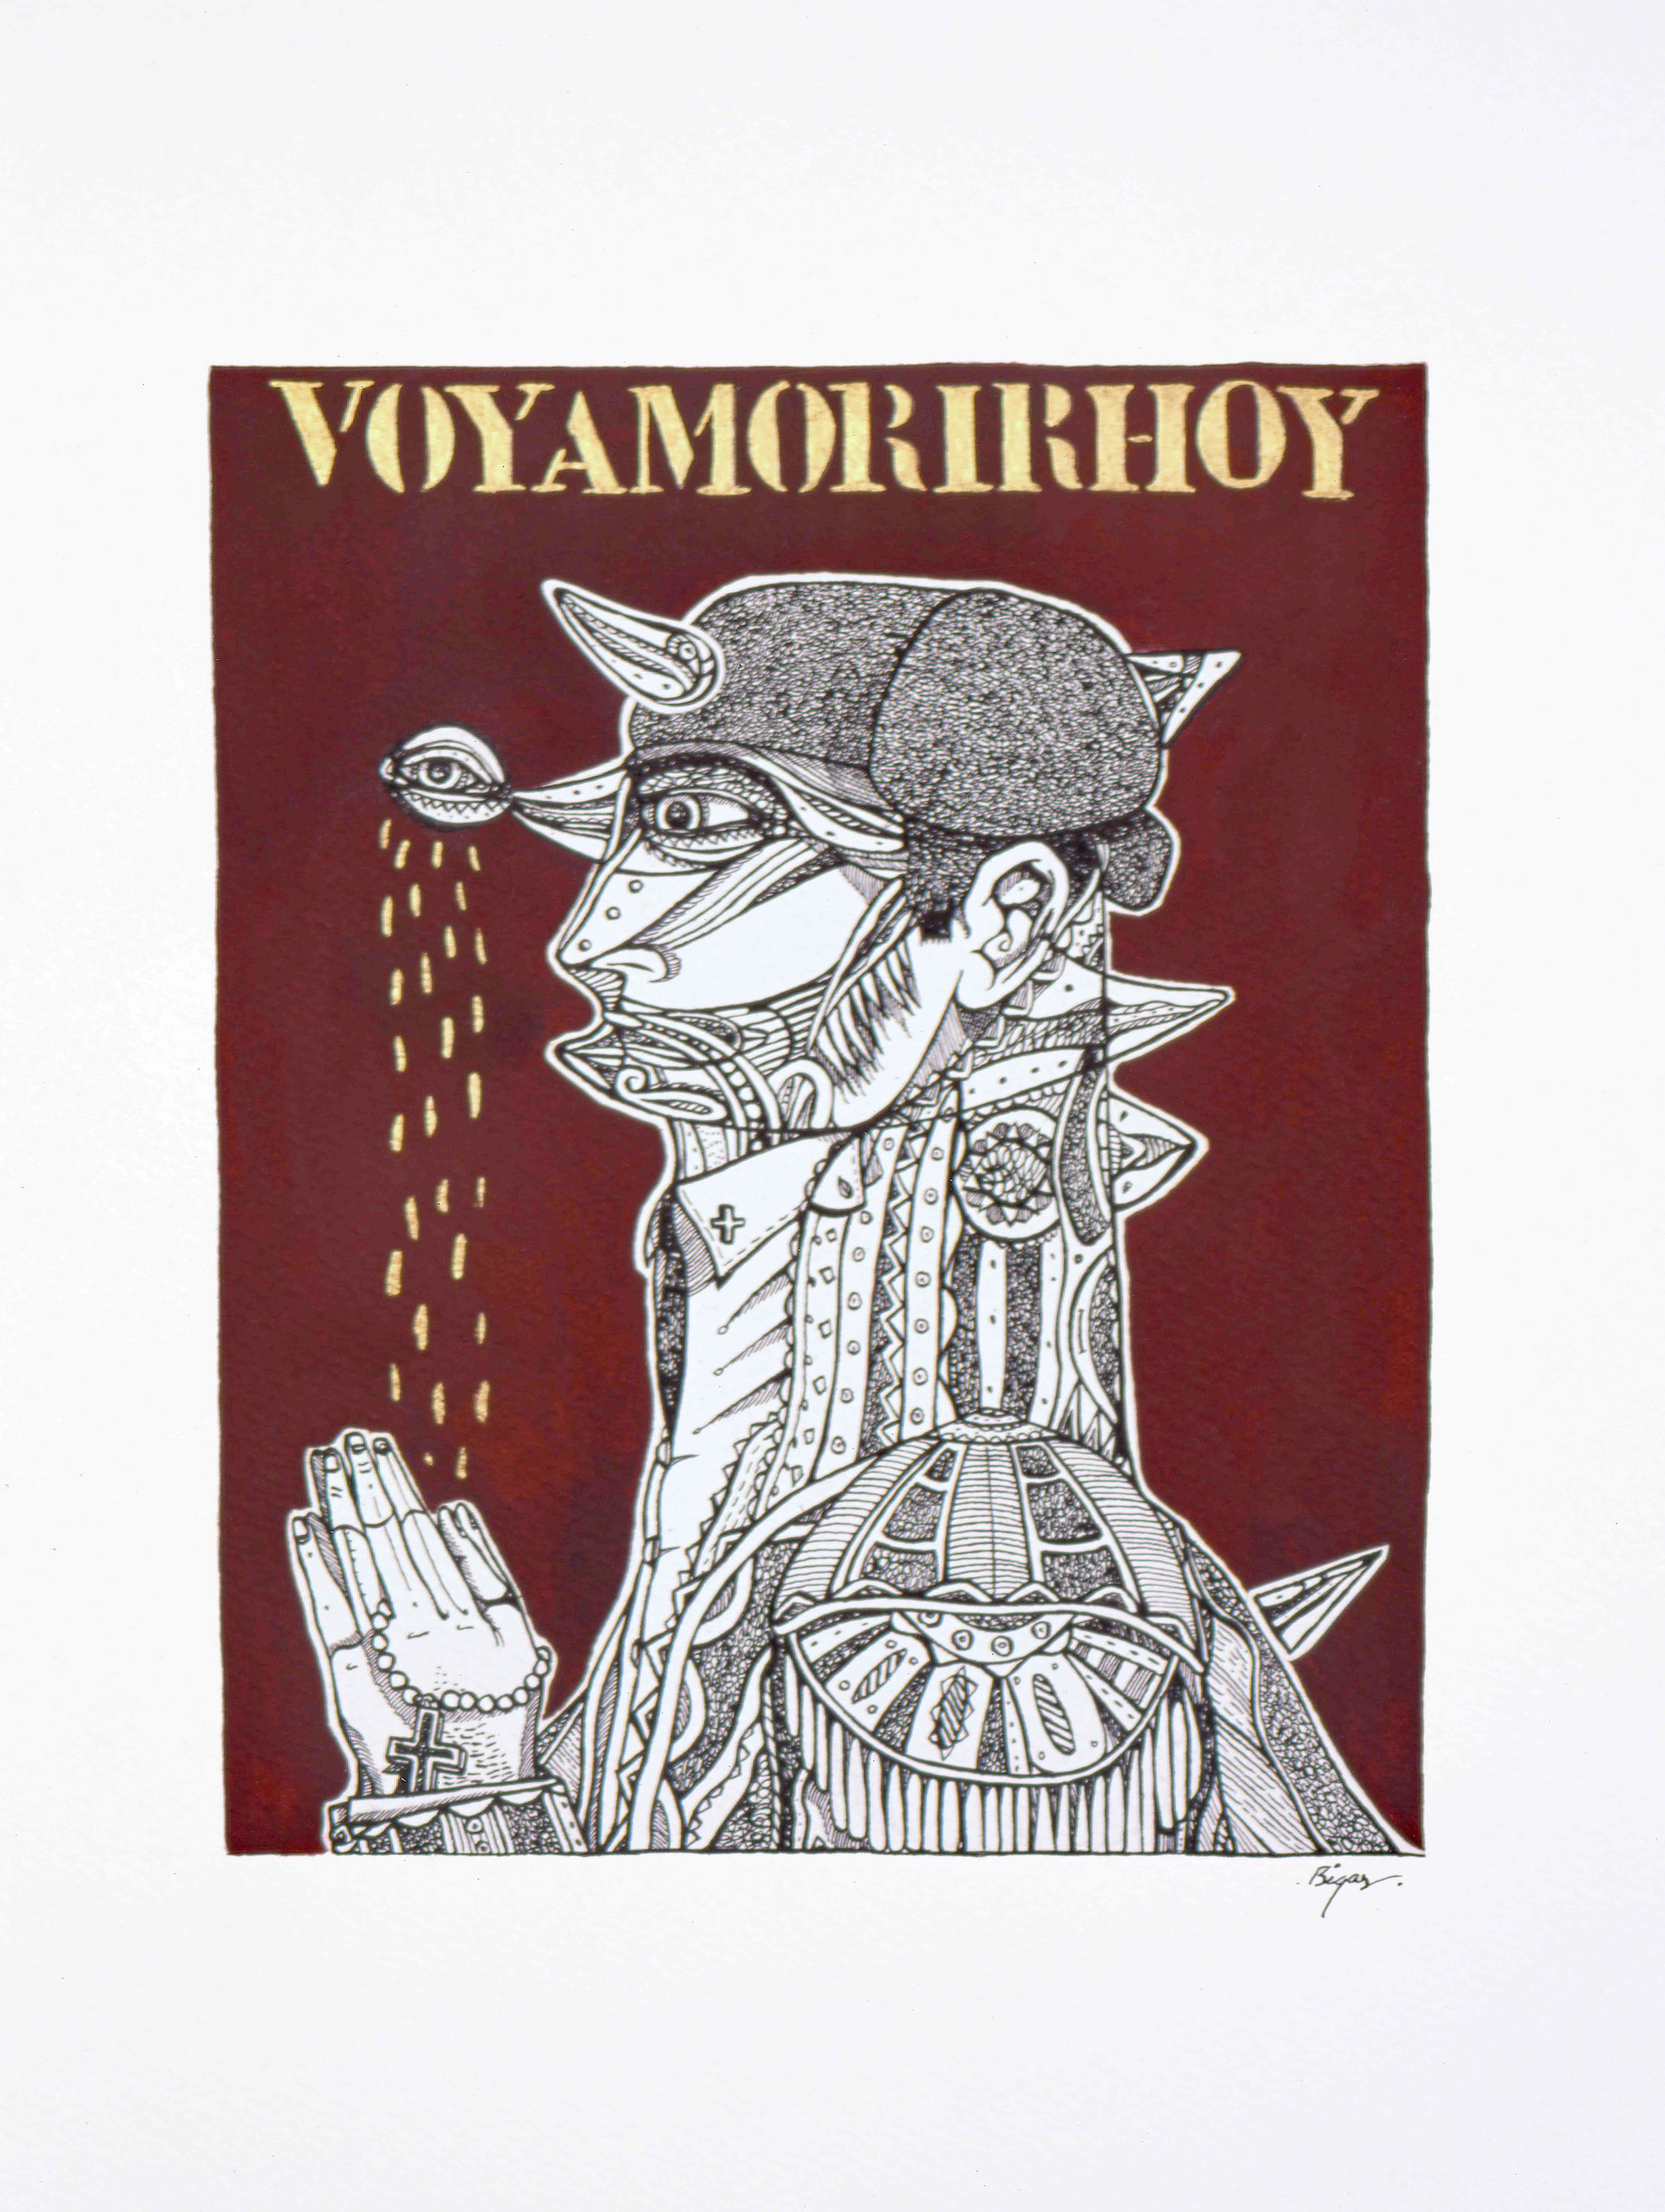 Voyamorirhoy 1997 40x30cm. Oil and Ink on paper